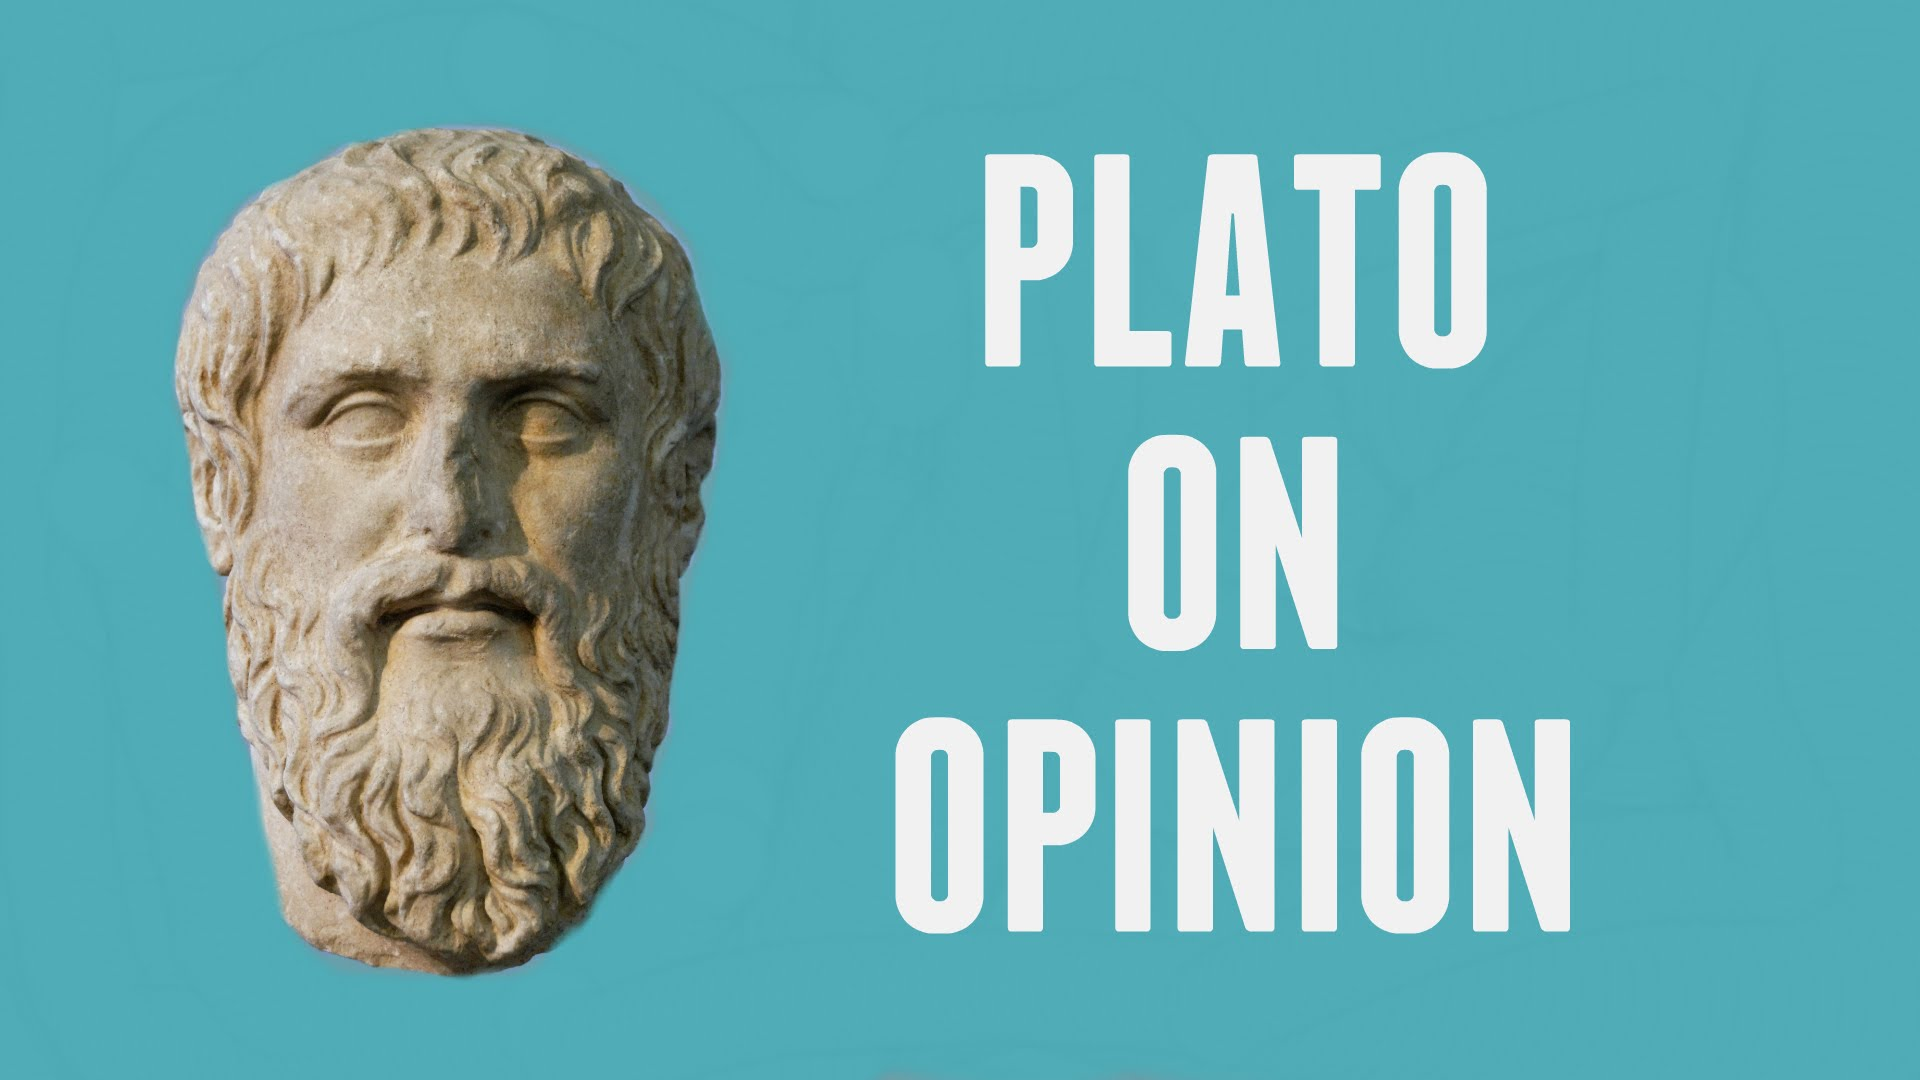 plato s beliefs on knowledge Plato's theory is controversial, because his belief these forms are the only true source of legitimate knowledge call into question his own views, which are, by nature, rooted in reality plato's theory of forms implies that grasping the world of forms is the only way to gain true, pure intelligence.